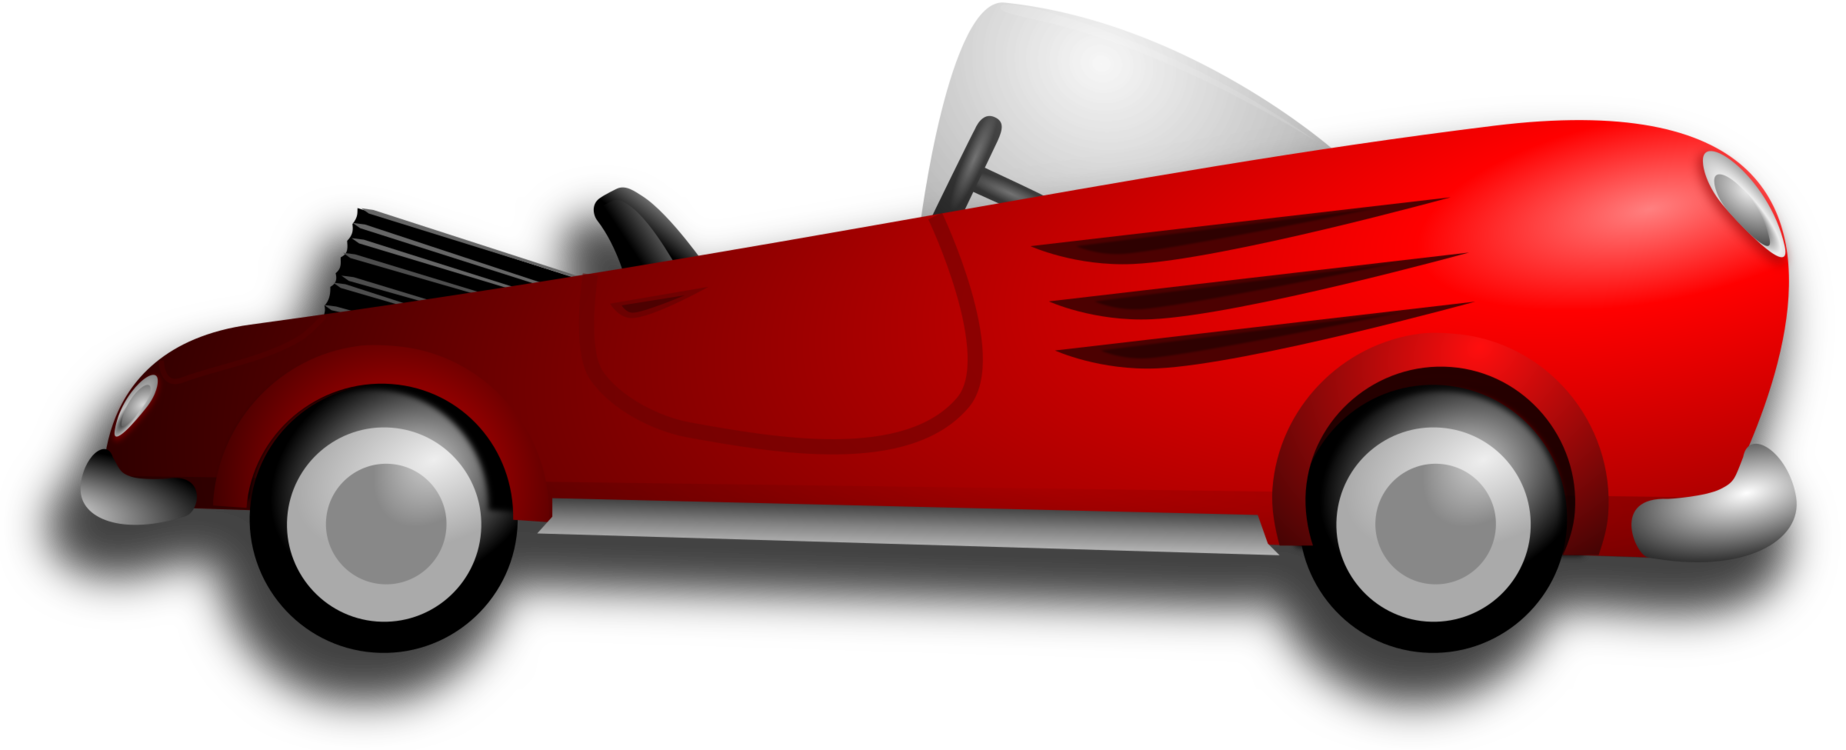 Classic clipart red classic car. Sports driving vintage free